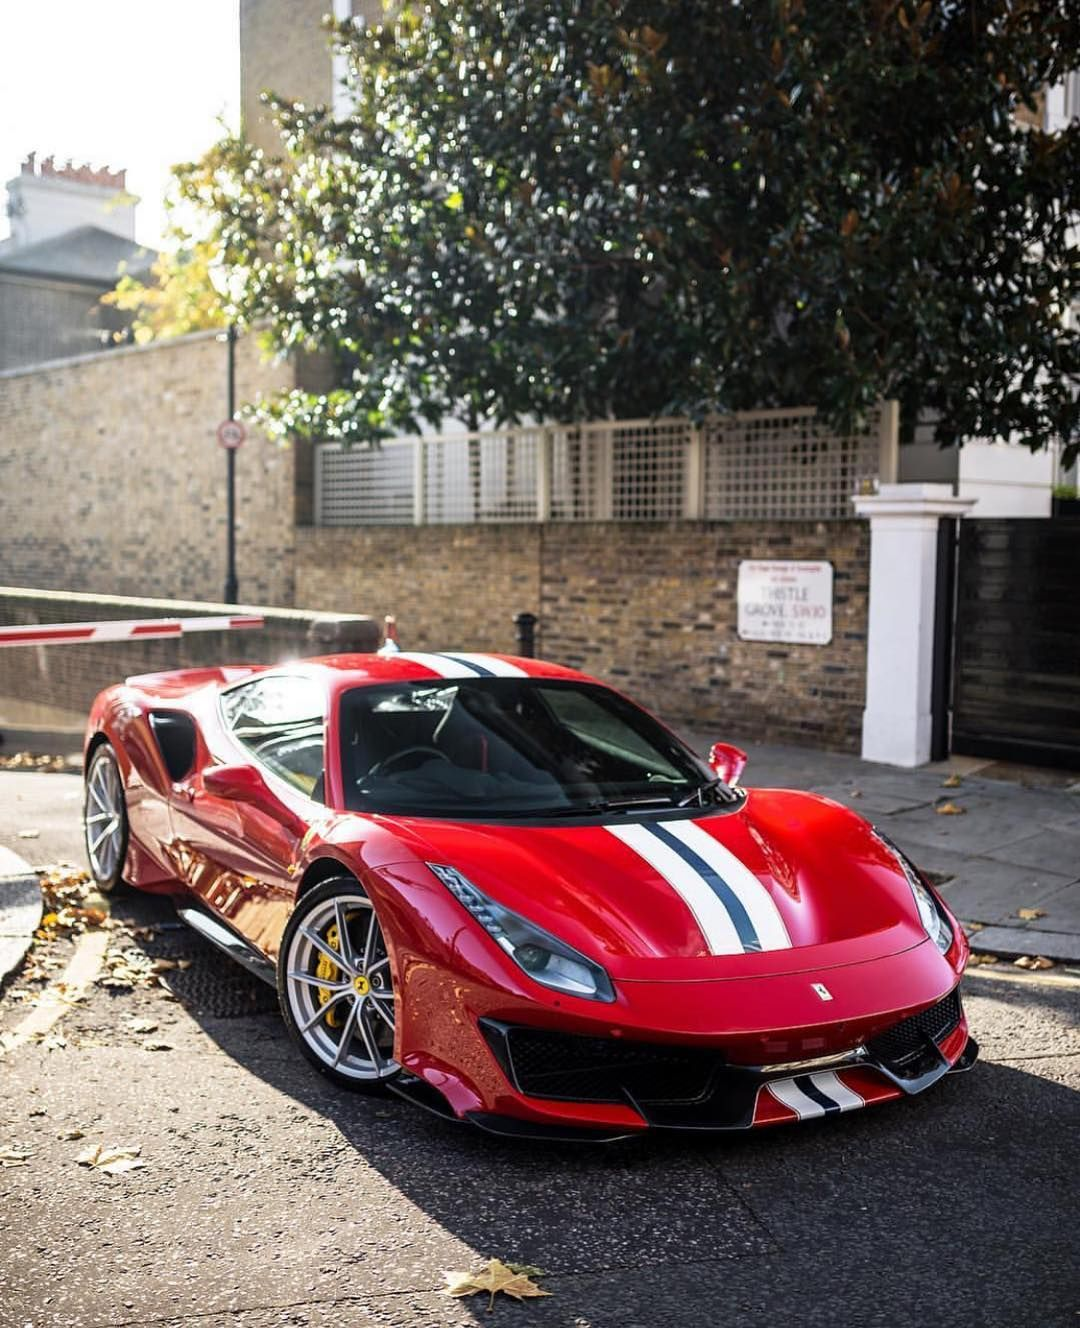 Ferrari 488 Pista: I Didn't Think The 488 Pista Would Have Been So Beautiful